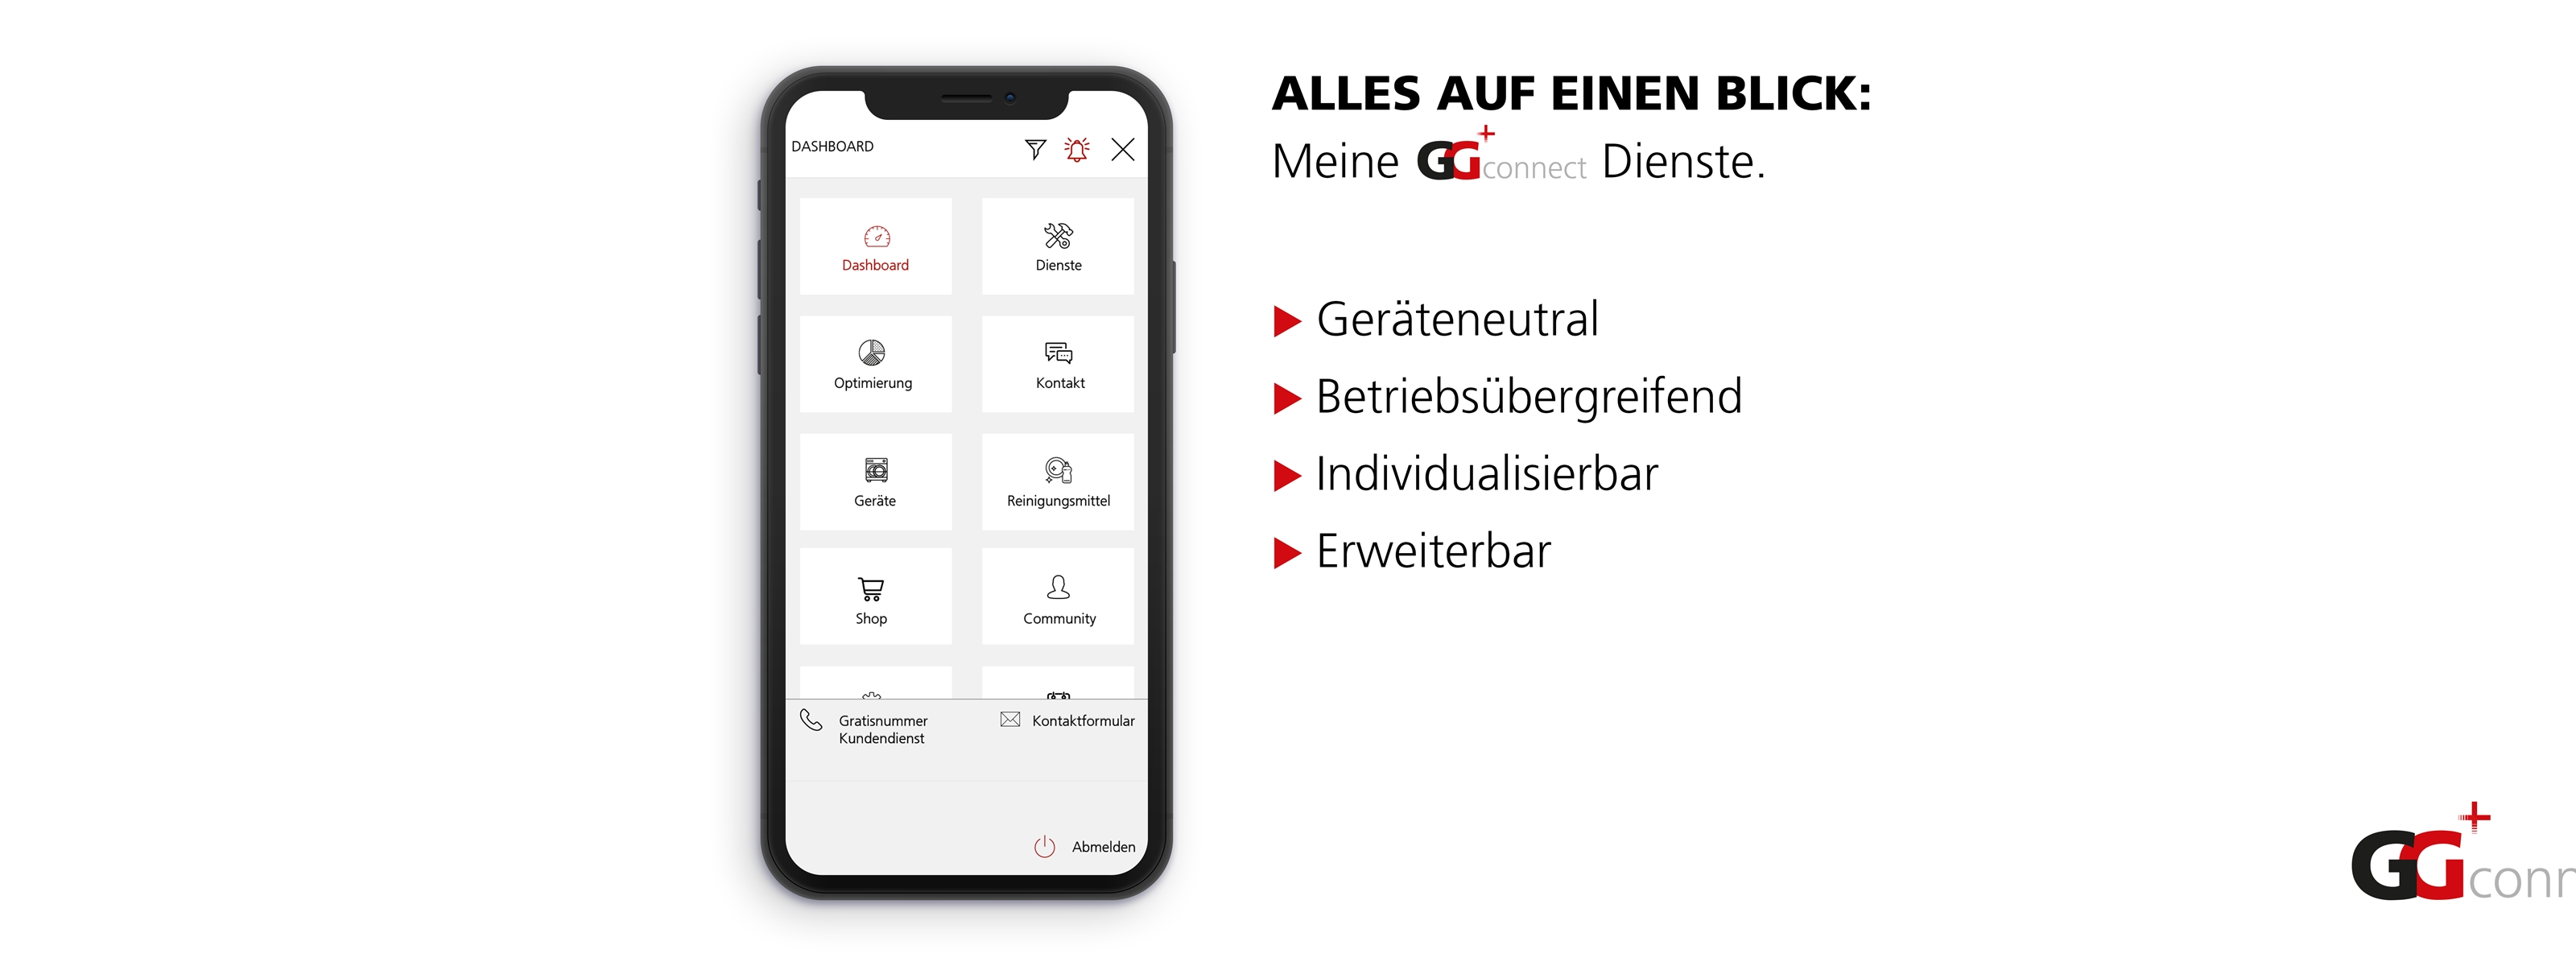 GGPlus_Connect_Dienste_Gehrig_Group_AG_Connectivity